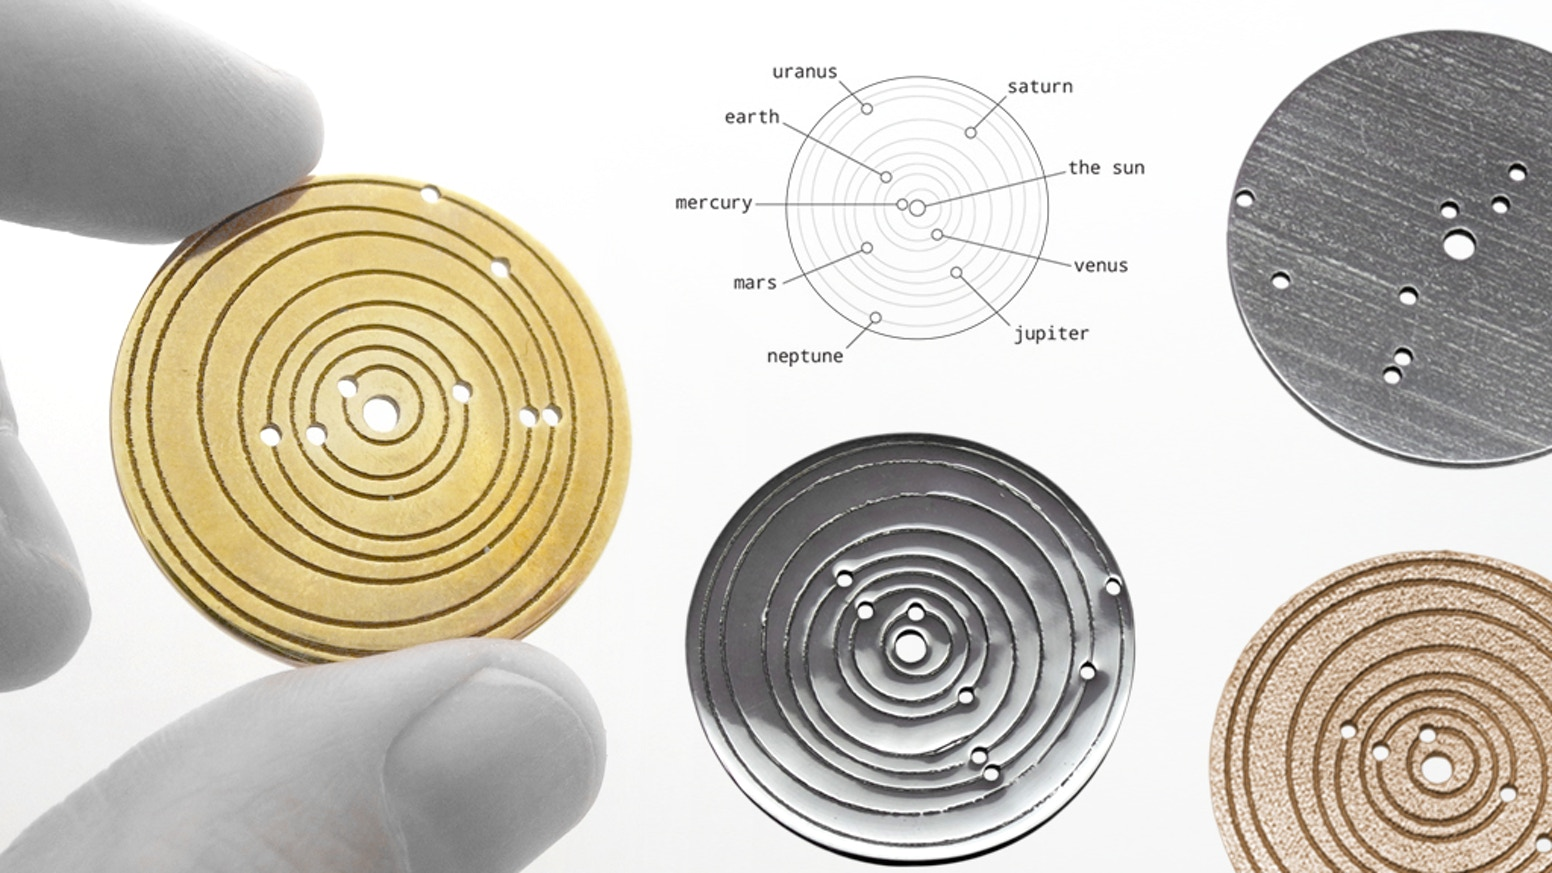 celebrate a personal event with this 3D printed solar system, custom made with NASA's data. a pendant or keyring ideal for Astronomy & Science lovers.